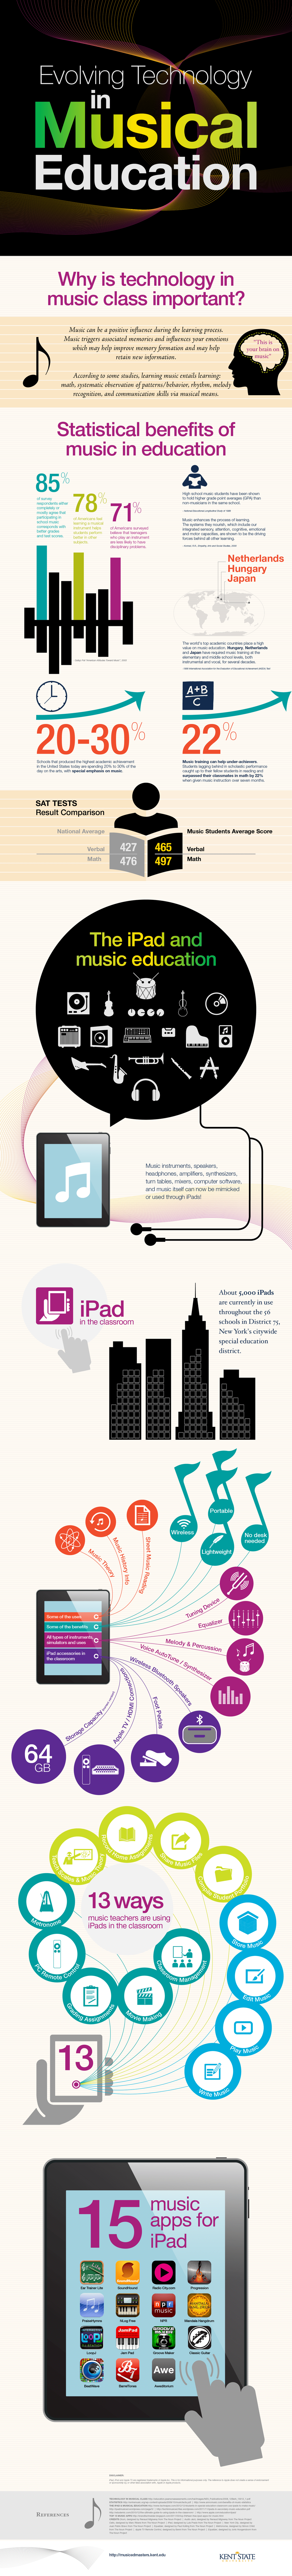 Educational-Technology-in-Music-Education-Infographic